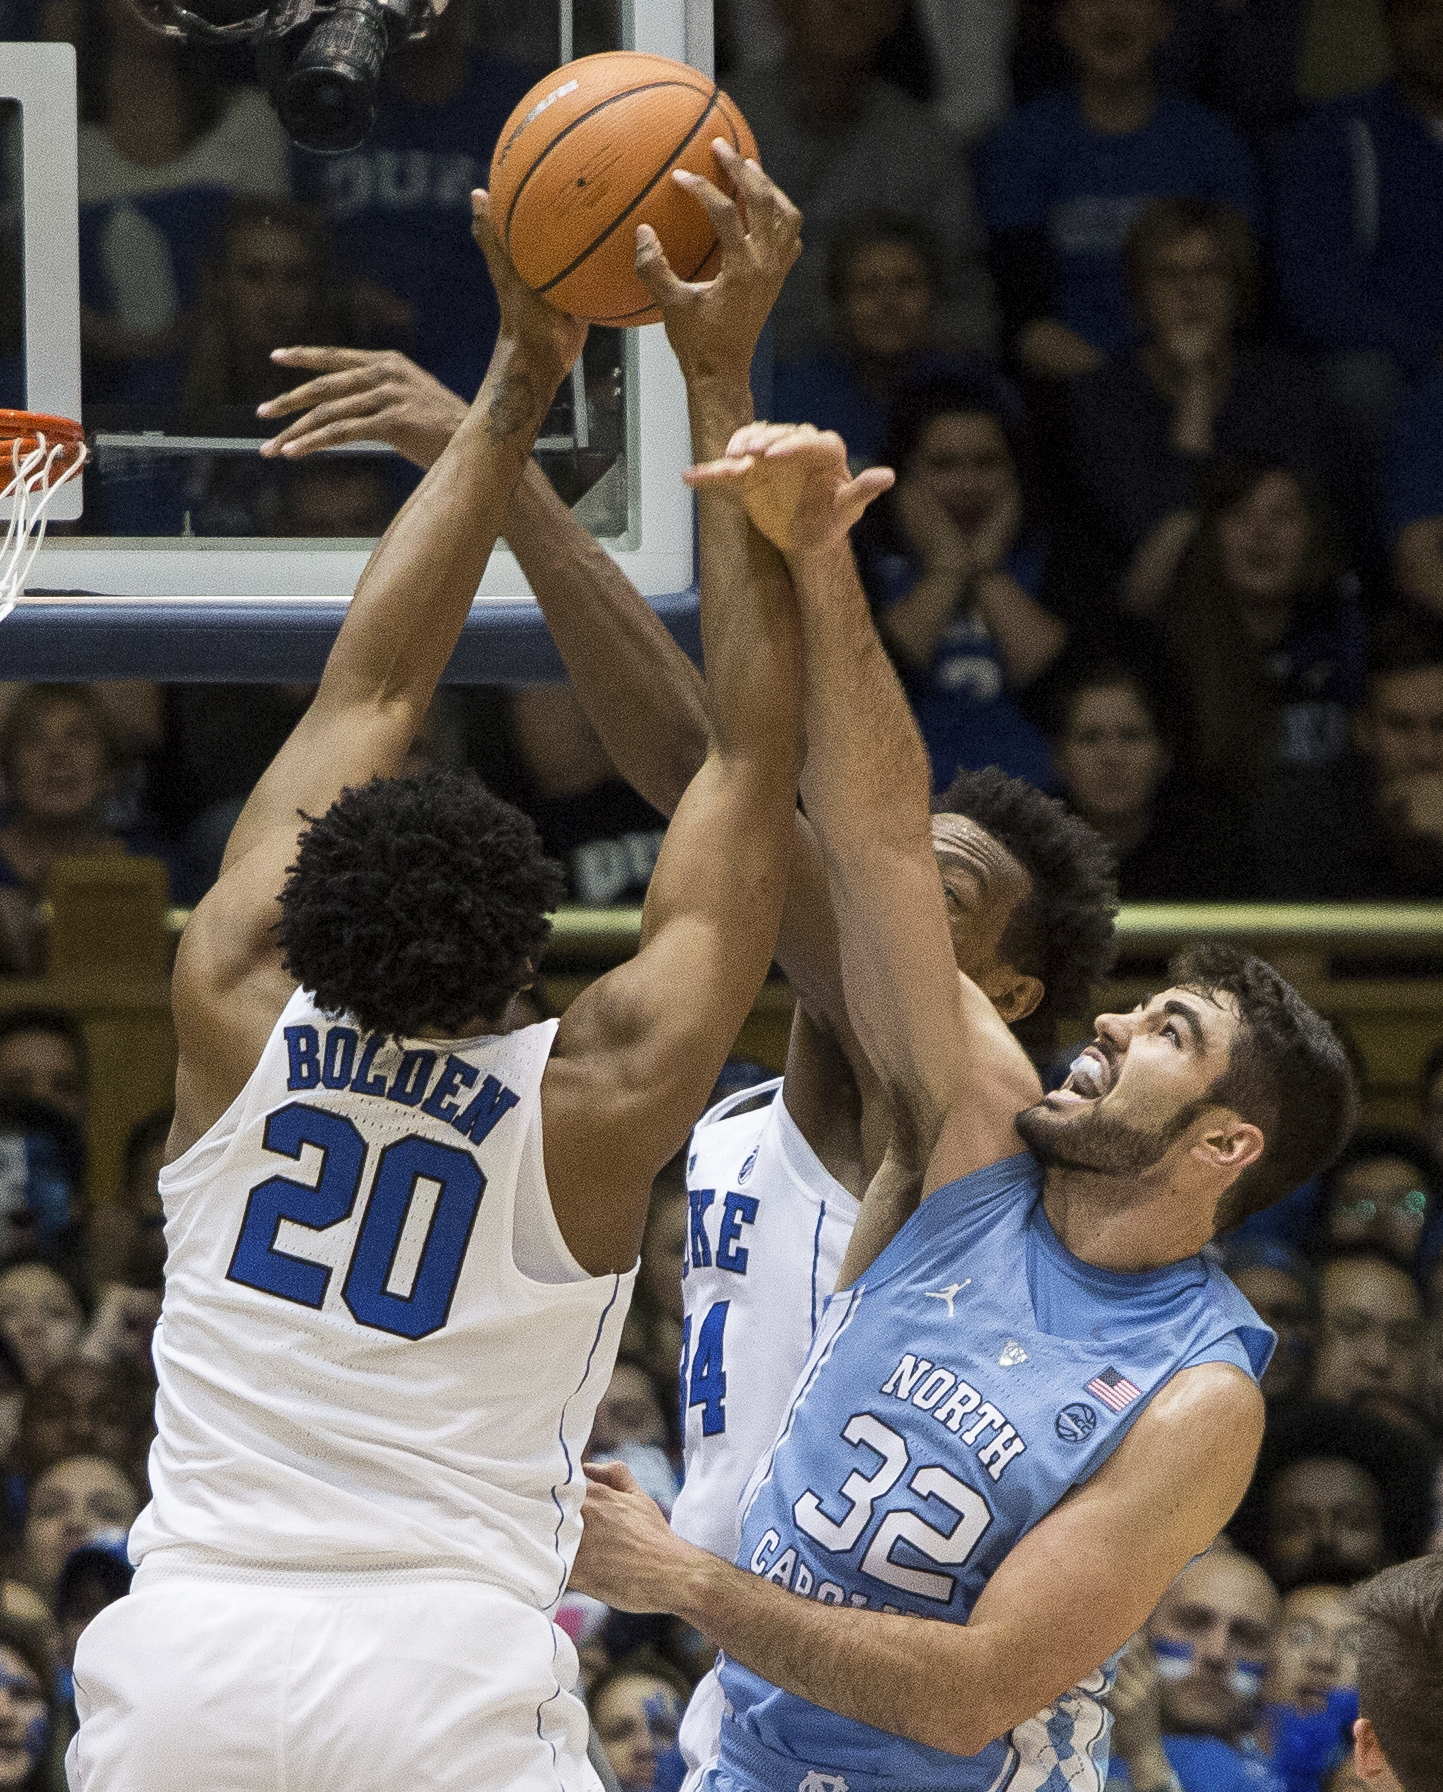 <div class='meta'><div class='origin-logo' data-origin='none'></div><span class='caption-text' data-credit='AP Photo/Ben McKeown'>North Carolina's Luke Maye (32) fights for a rebound with Duke's Marques Bolden (20) and Wendall Carter Jr. (34) during the first half of an NCAA college basketball game</span></div>